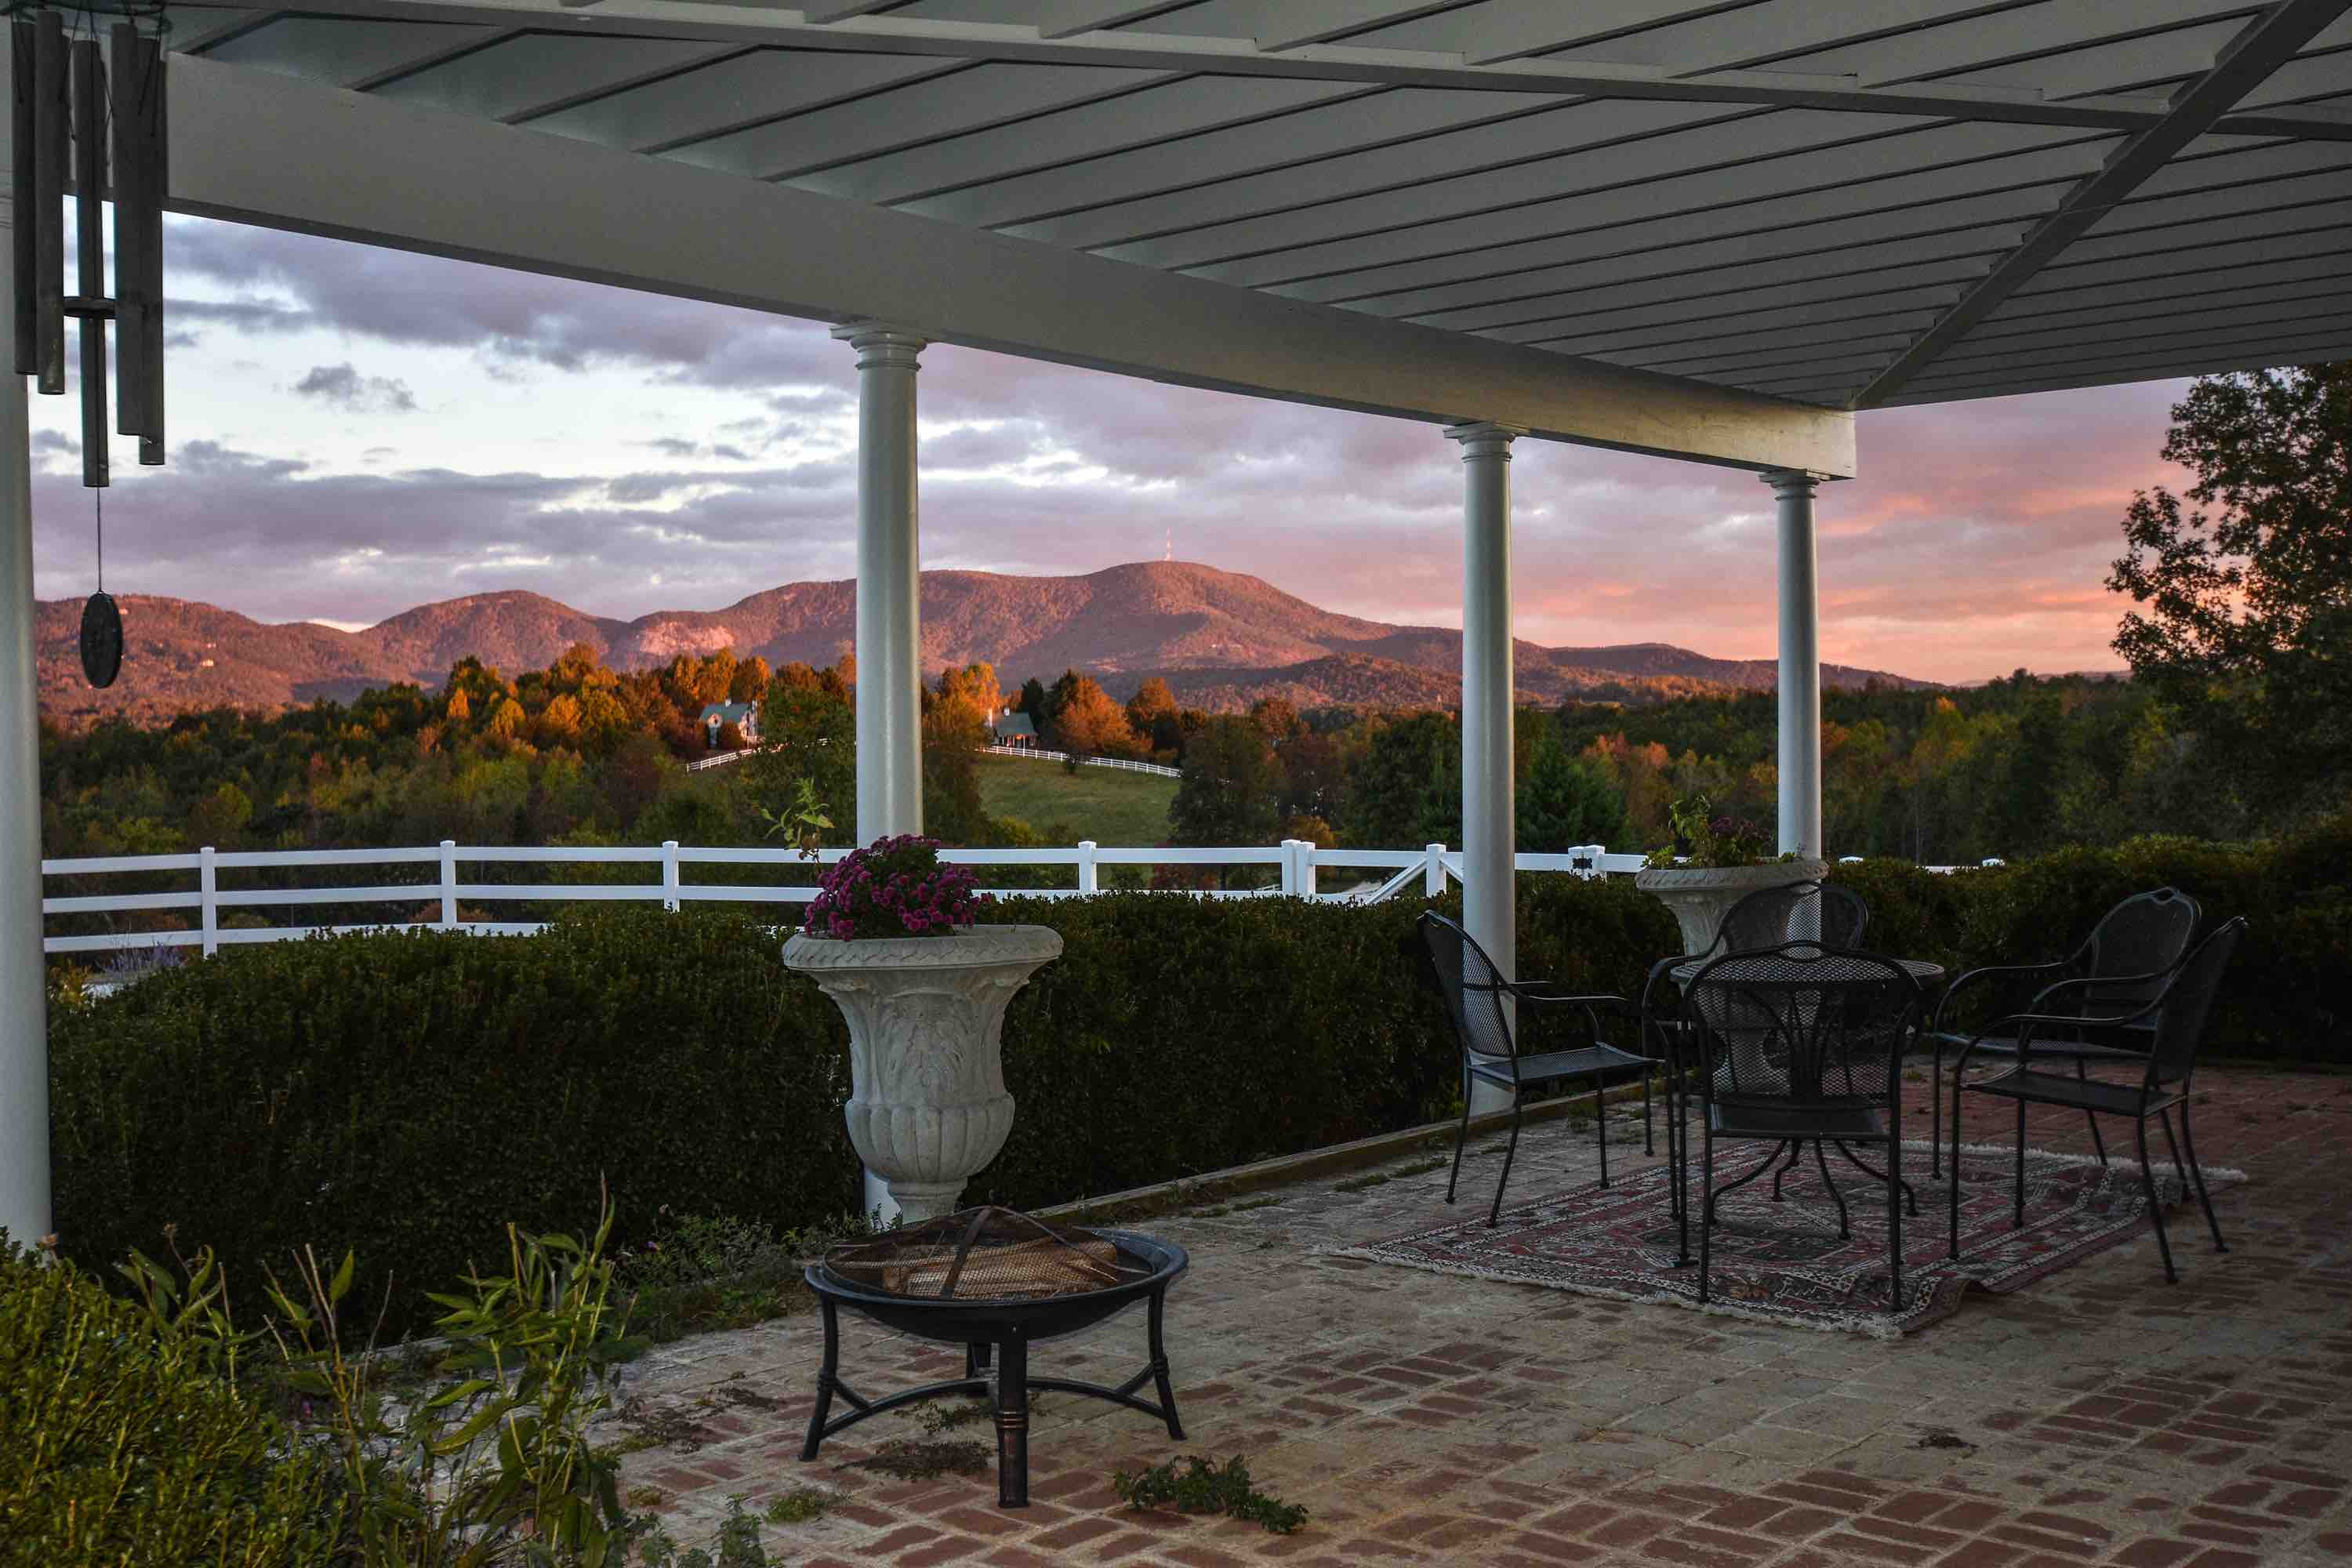 Landrum Sc Wedding Venue In The Mountains The Red Horse Inn